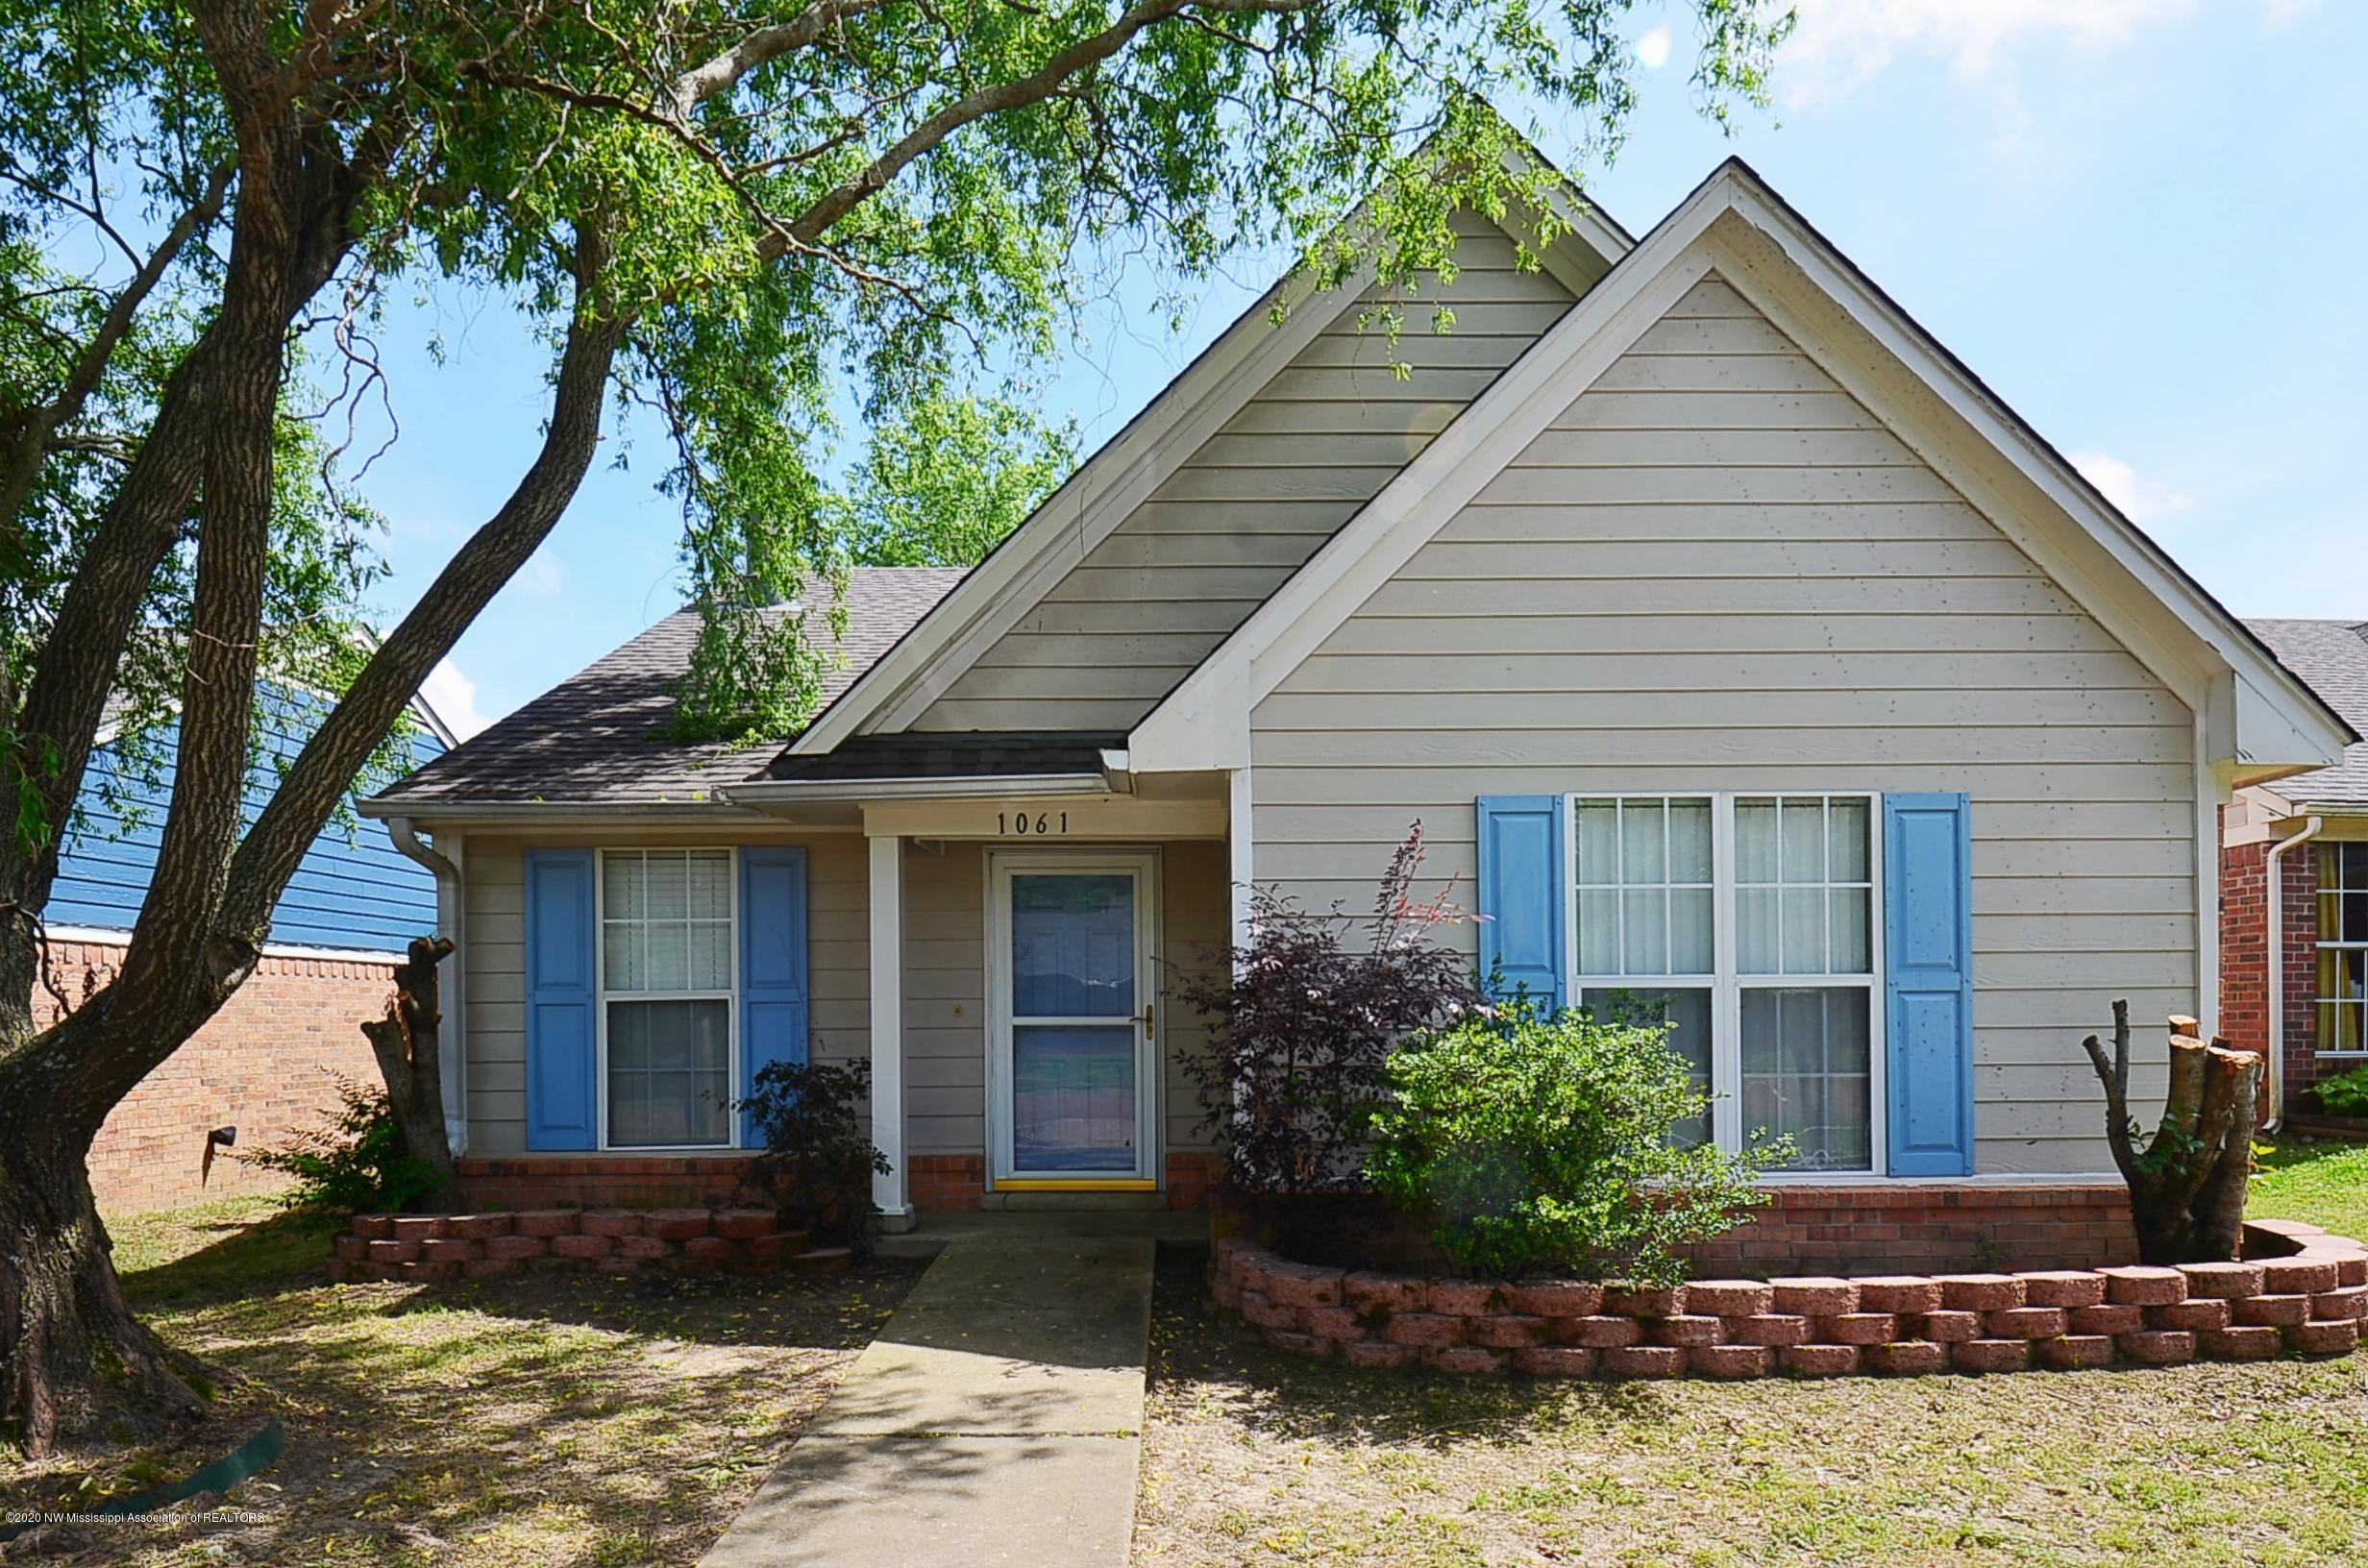 1061 McGowan Drive, Southaven, Mississippi